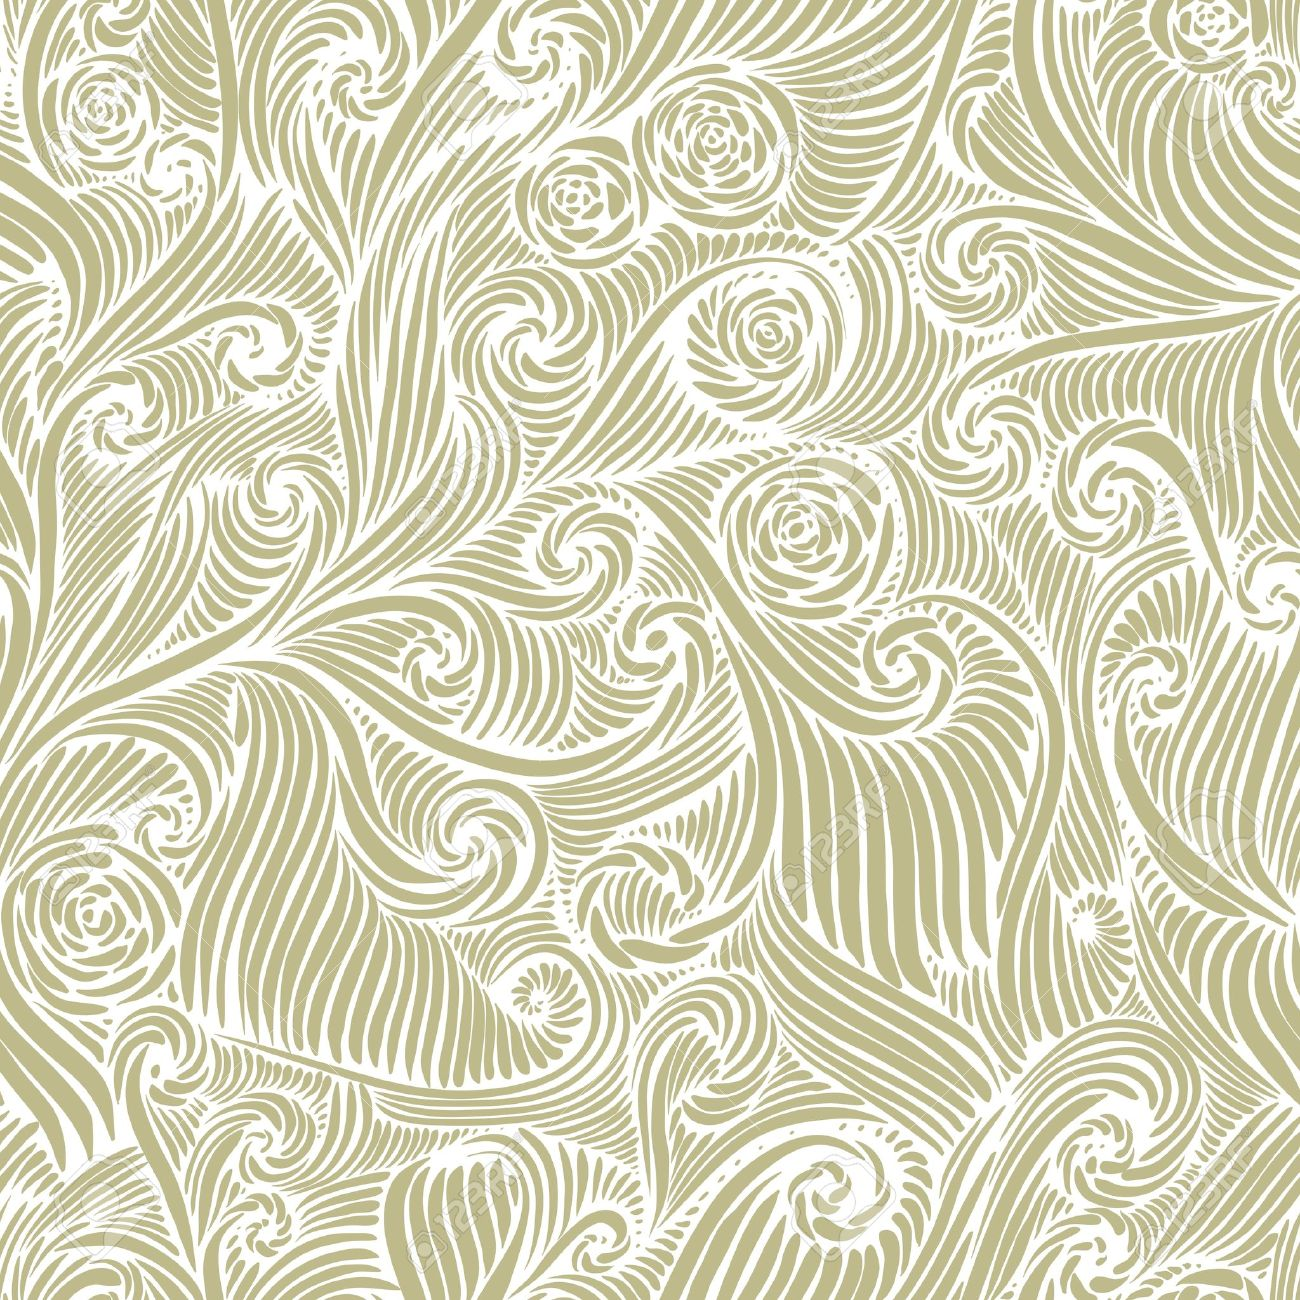 Seamless pattern, vintage style background Stock Vector - 15275240